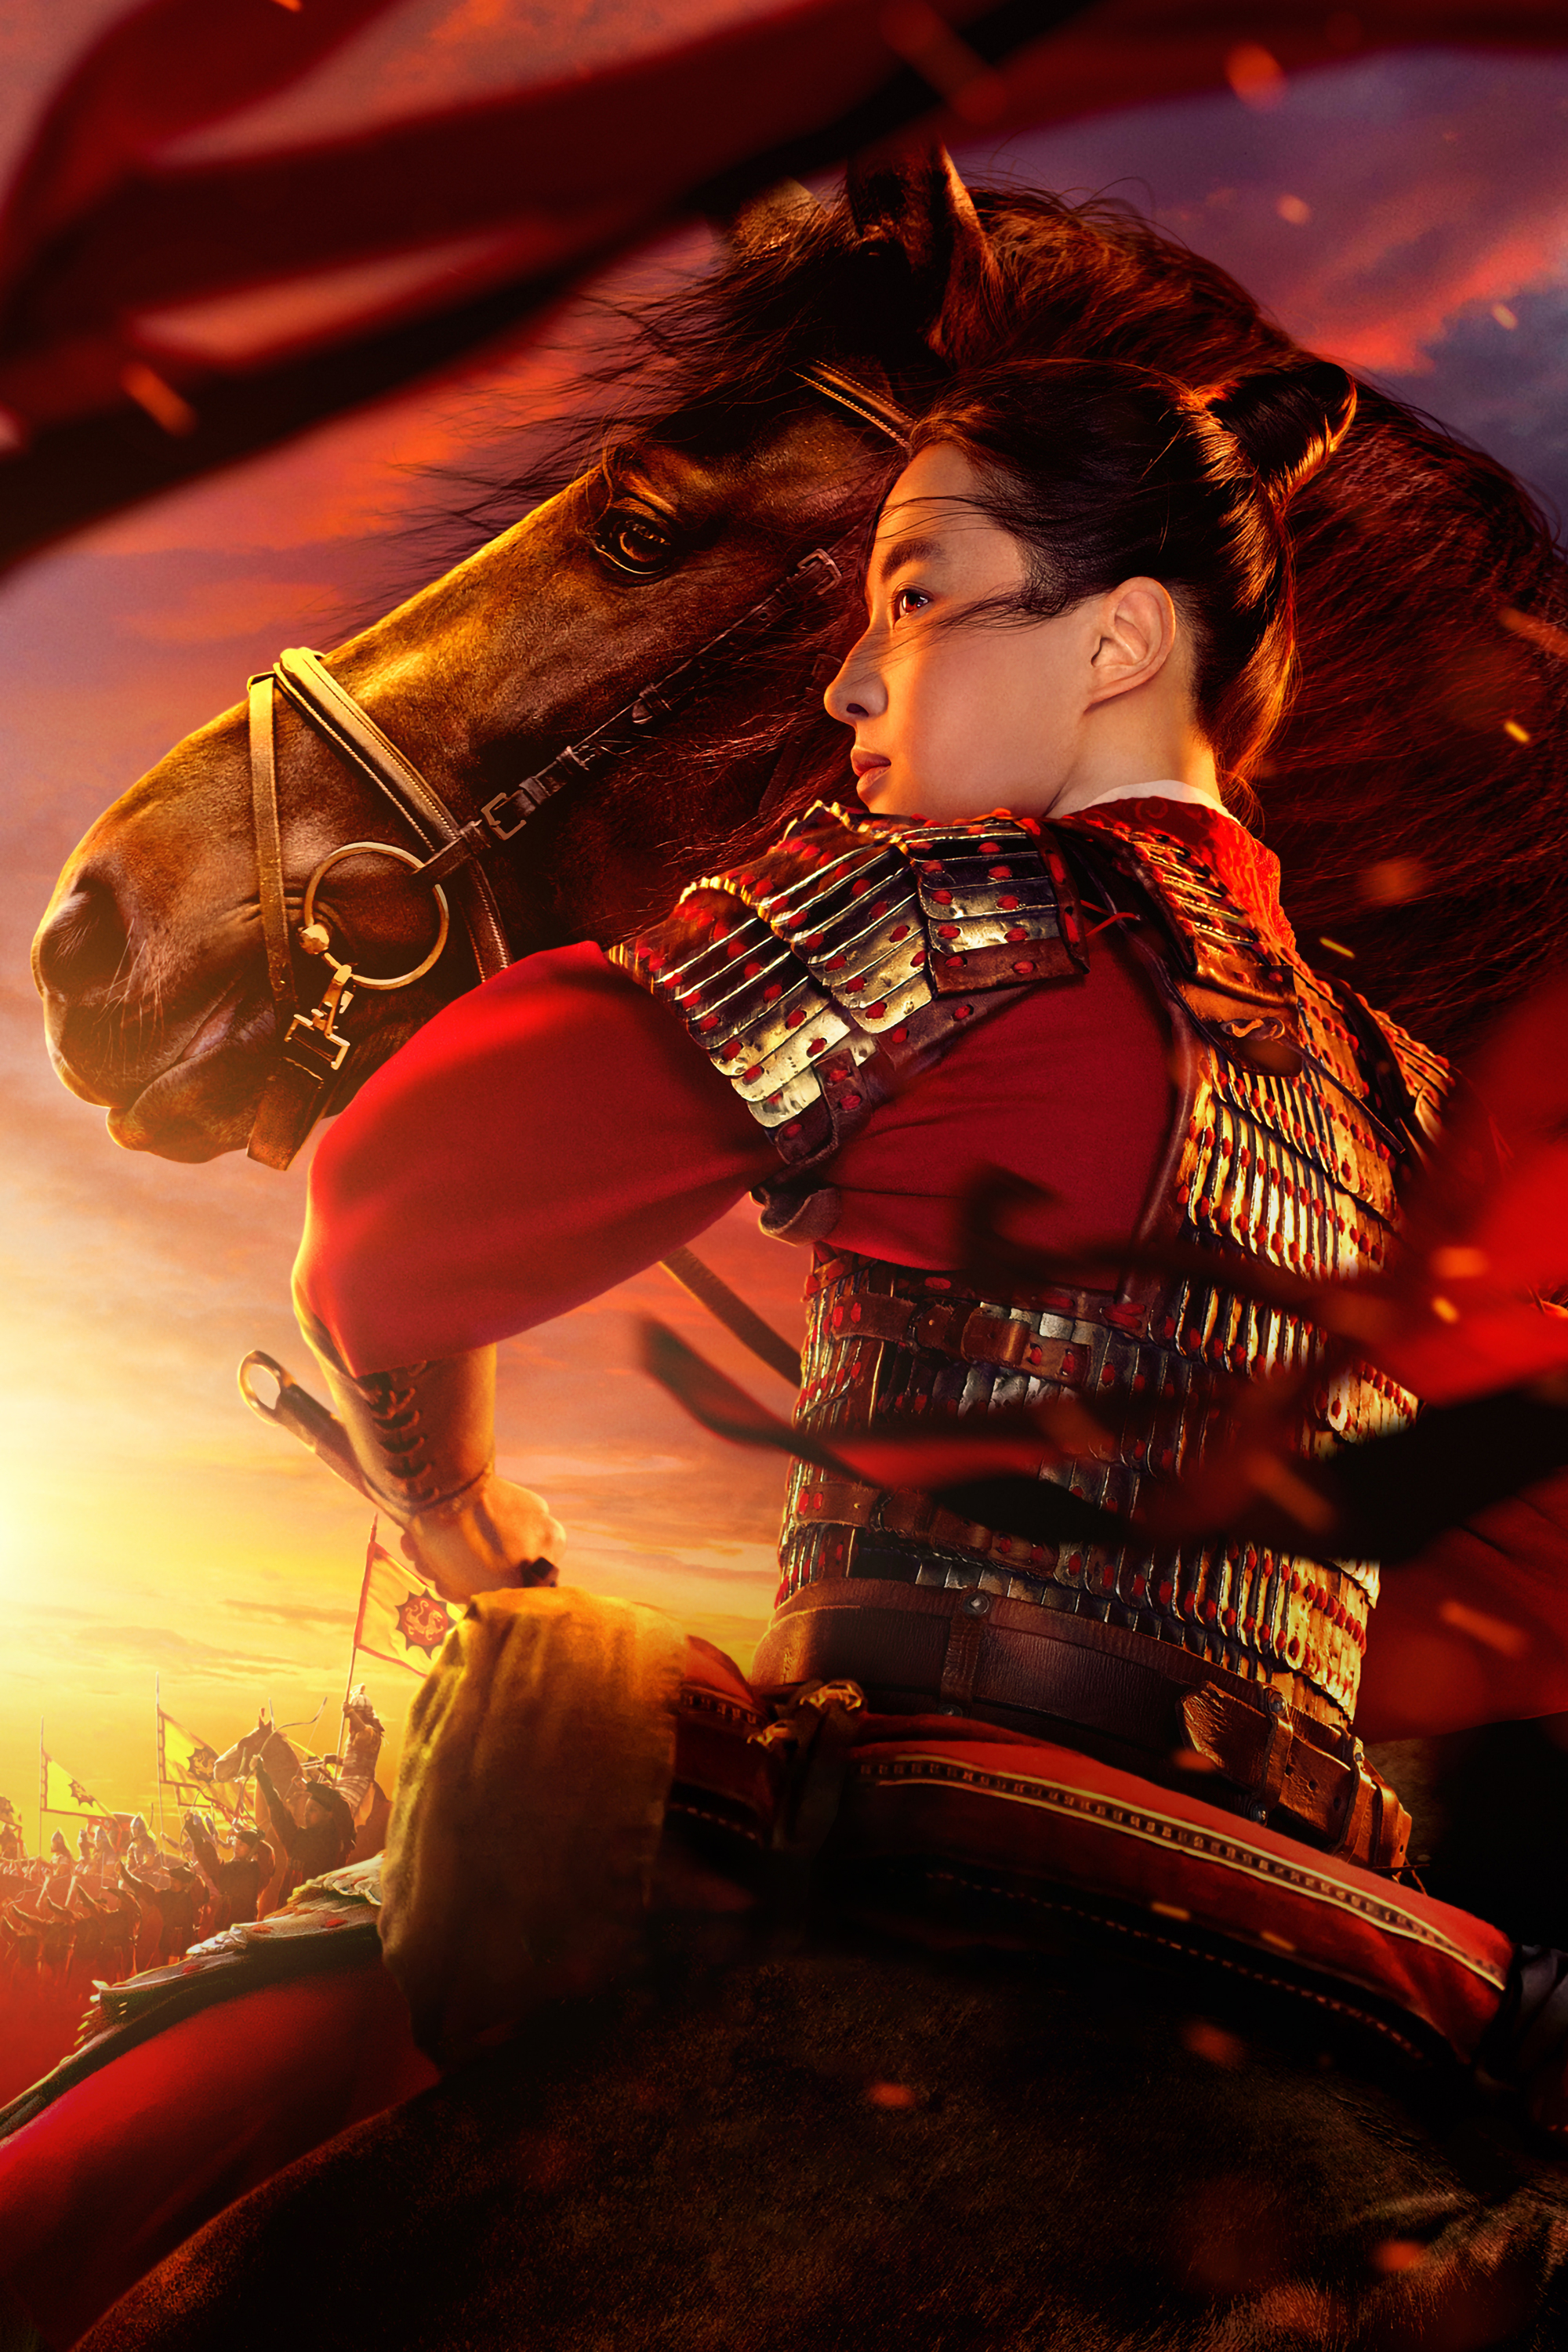 Disney Mulan 2020 Wallpaper Hd Movies 4k Wallpapers Images Photos And Background